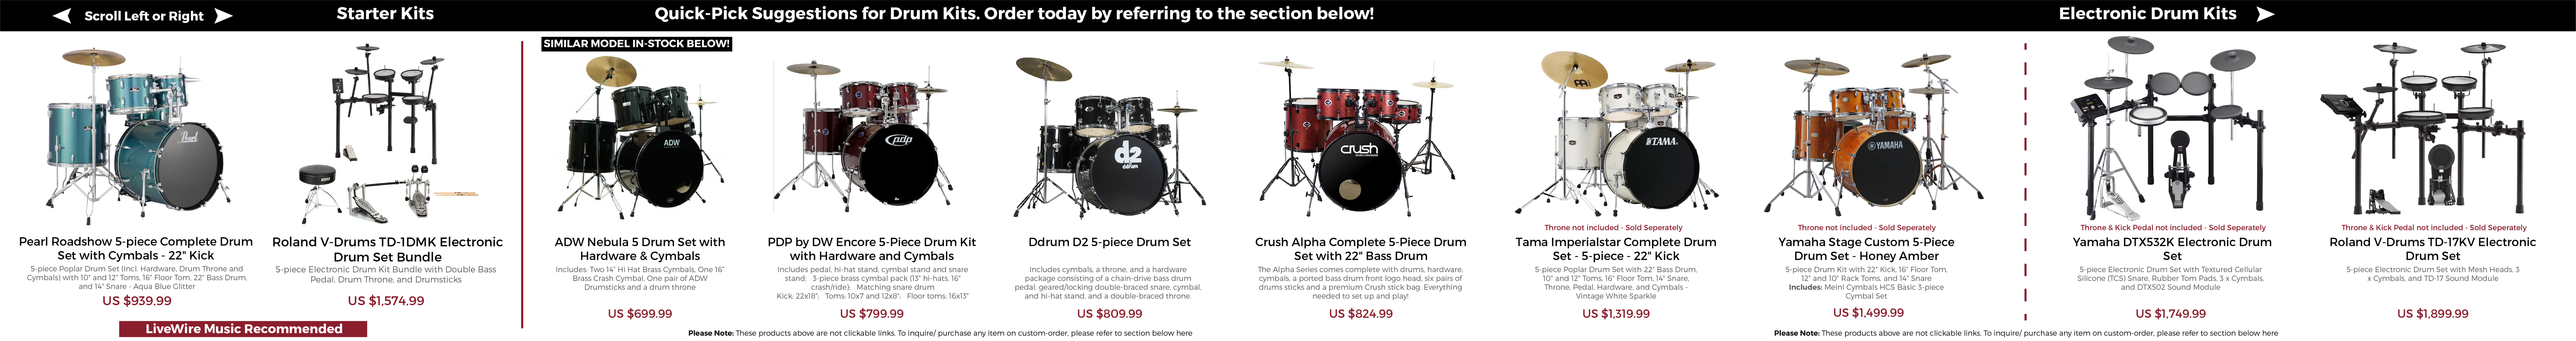 LW-Drums-Options.png